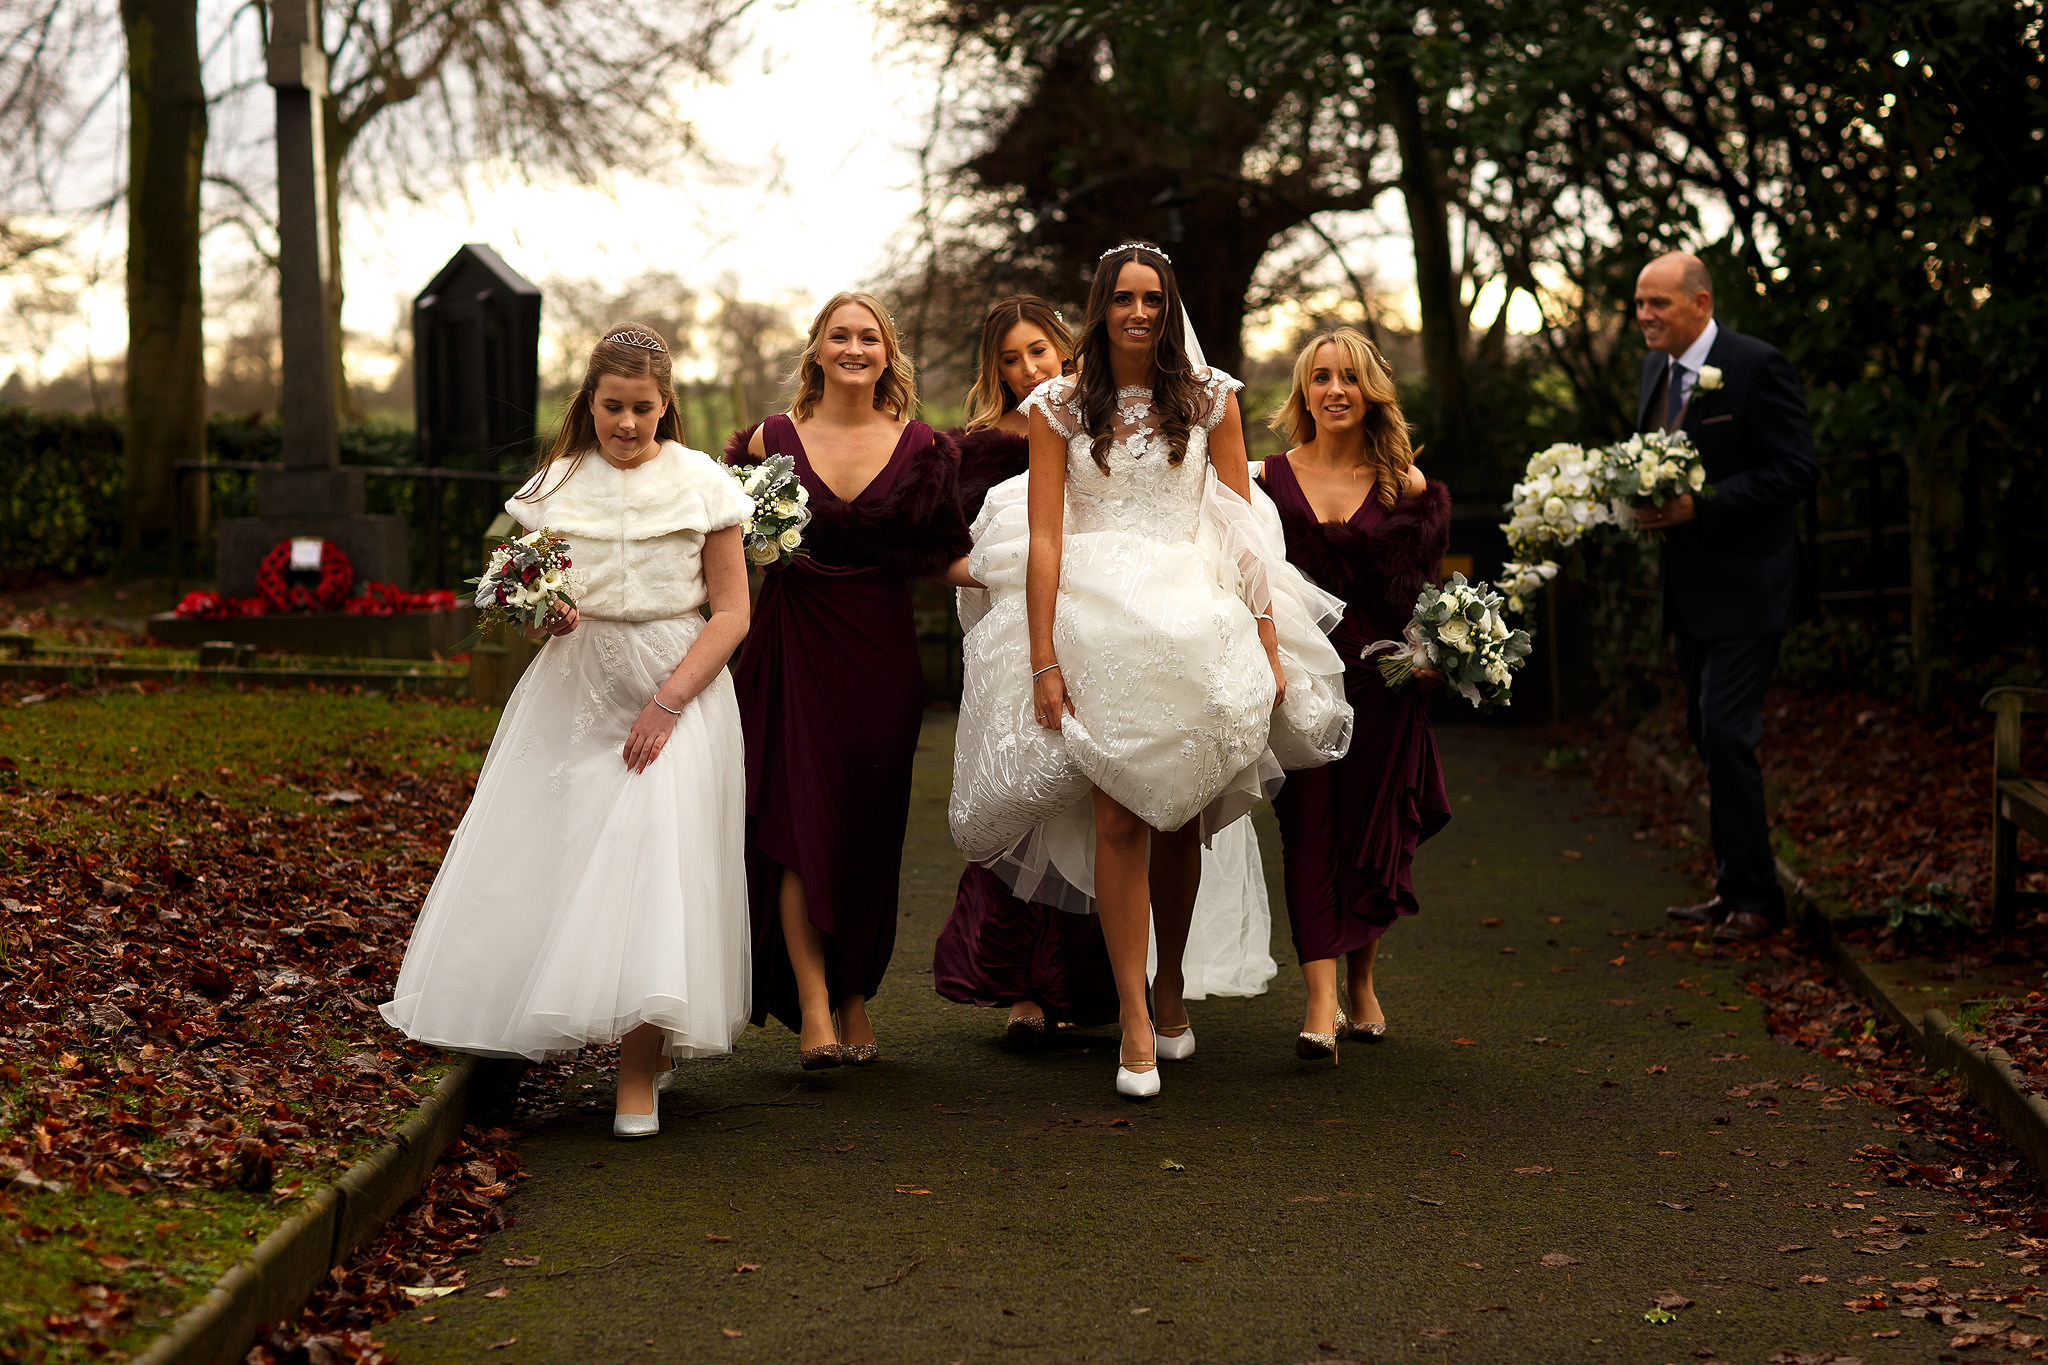 Bride holding long wedding dress up as she walks down the church pathway